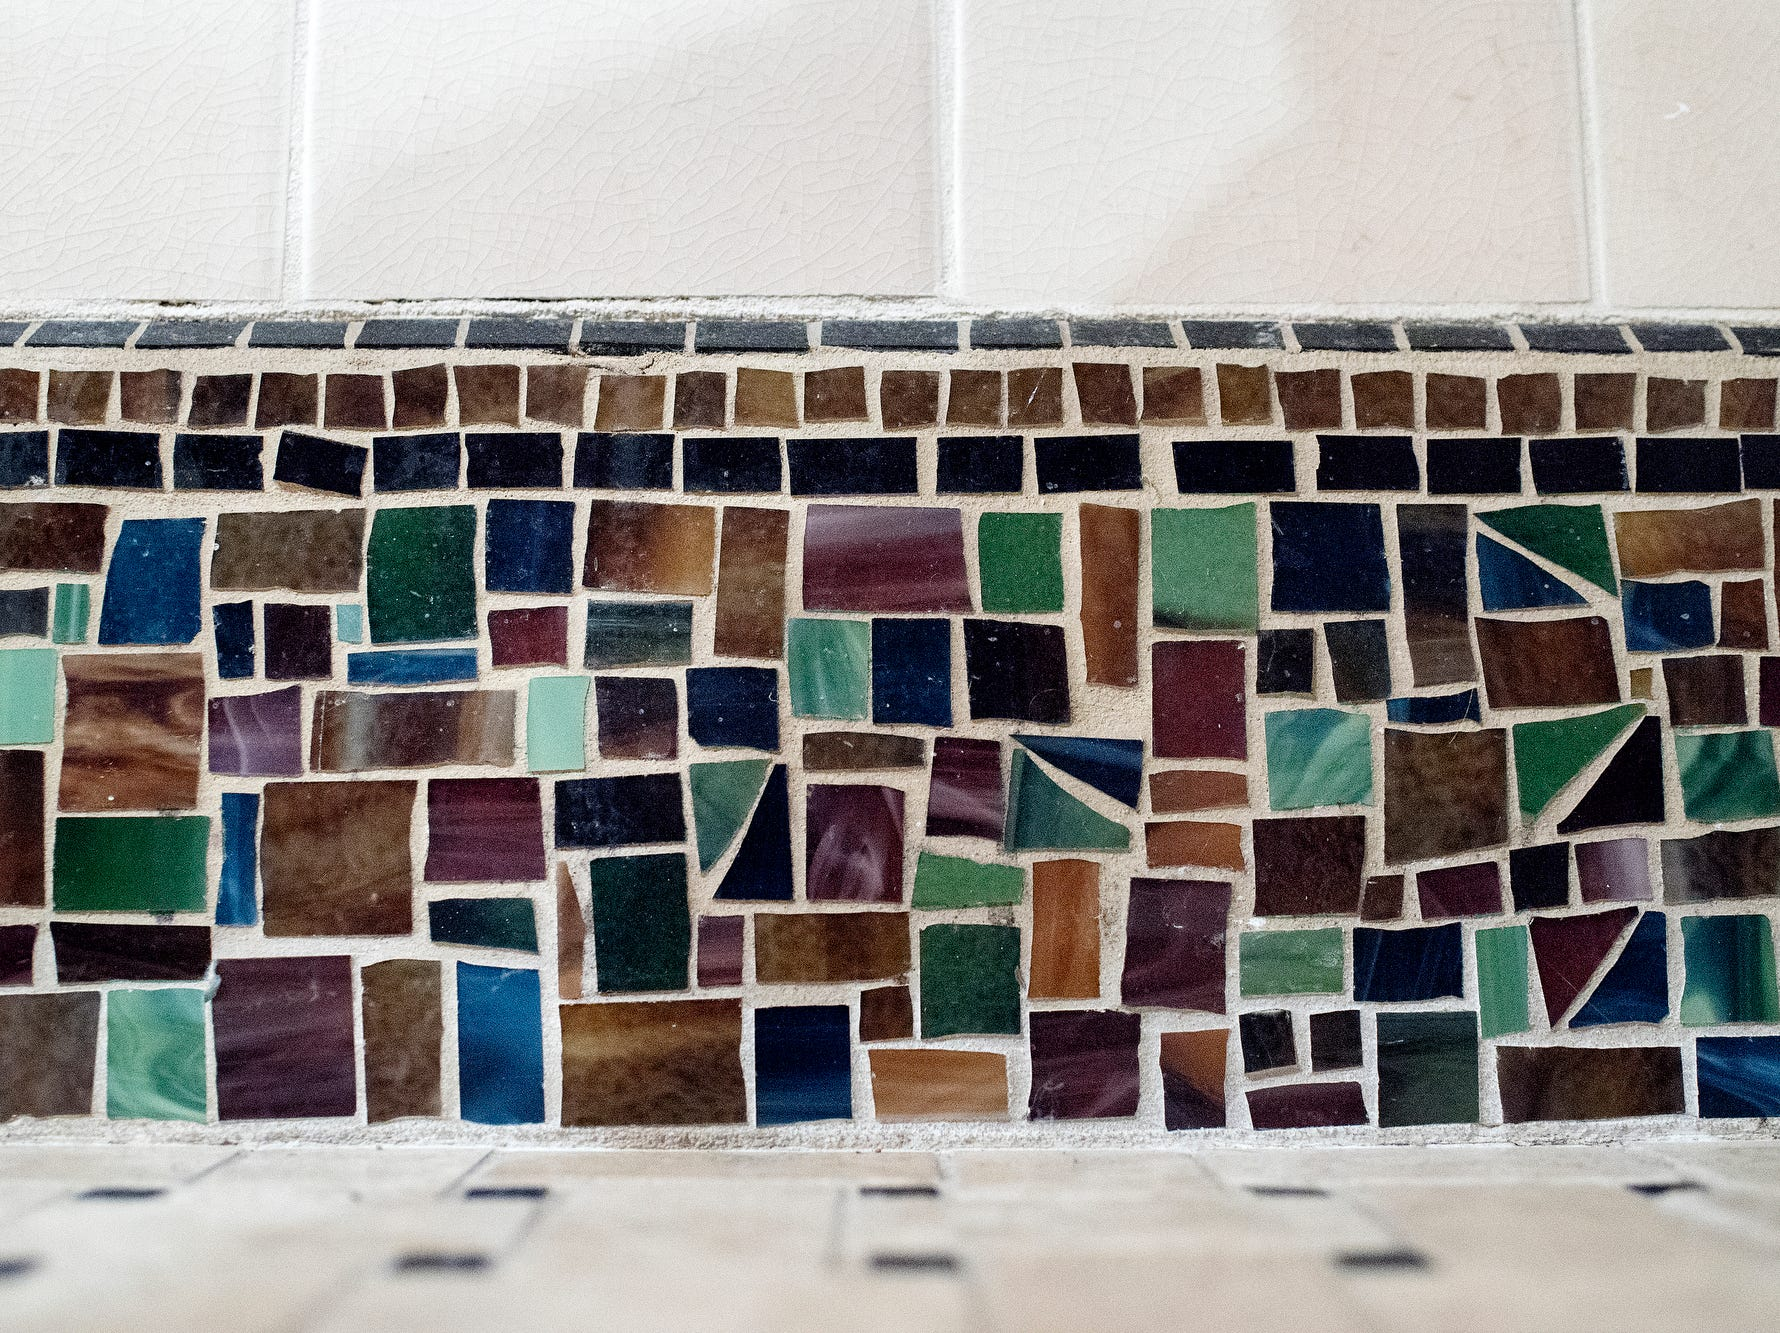 Deb Atkinson's mosaic work lines the bottom of the walls in a bathroom in the lower level in the historically Colonial home photographed on Tuesday, July 24, 2018, in East Lansing. Built in 1930, the Colonial-style home surrounded by greenery and beautifully renovated is now on the market.